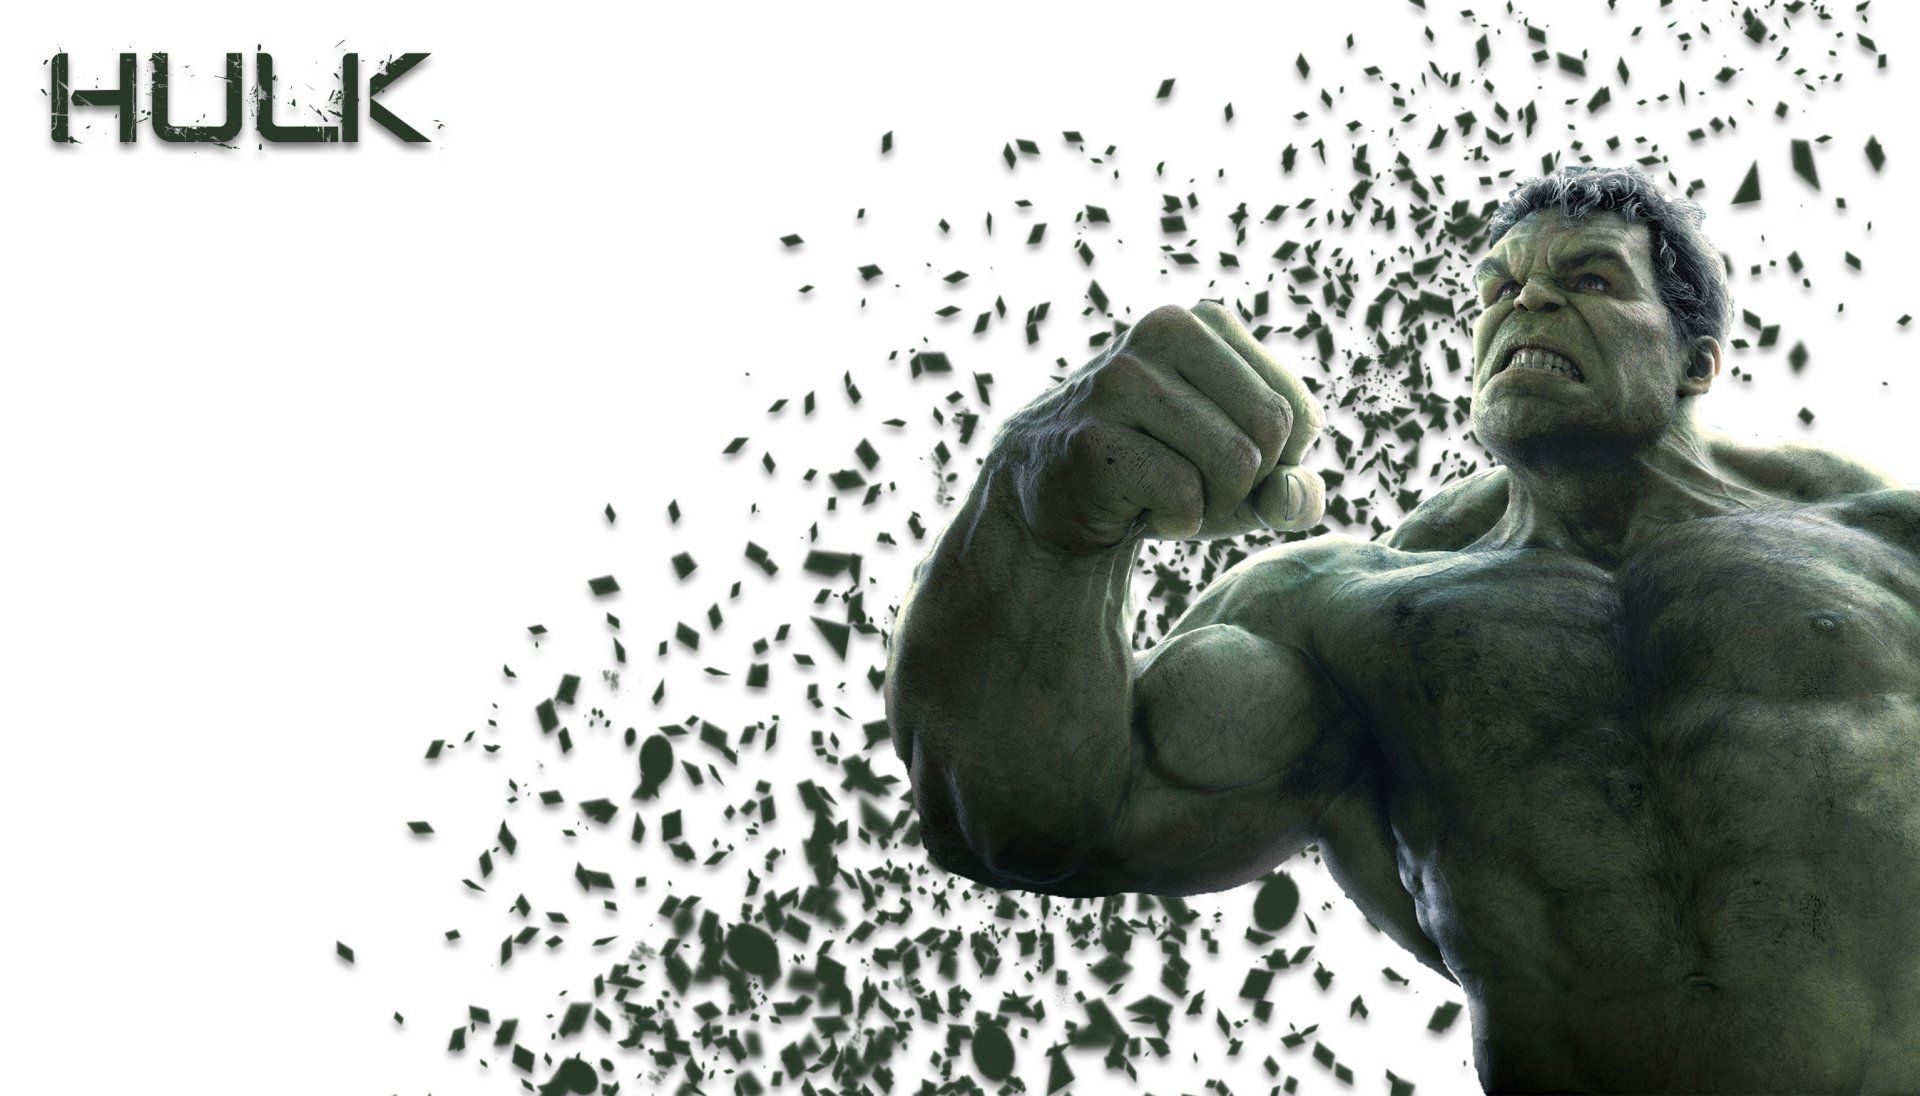 Hulk Full Hd Wallpaper And Background Image 2692x1536 Id 913721 Angry Wallpapers Avengers Infinity War Hulk